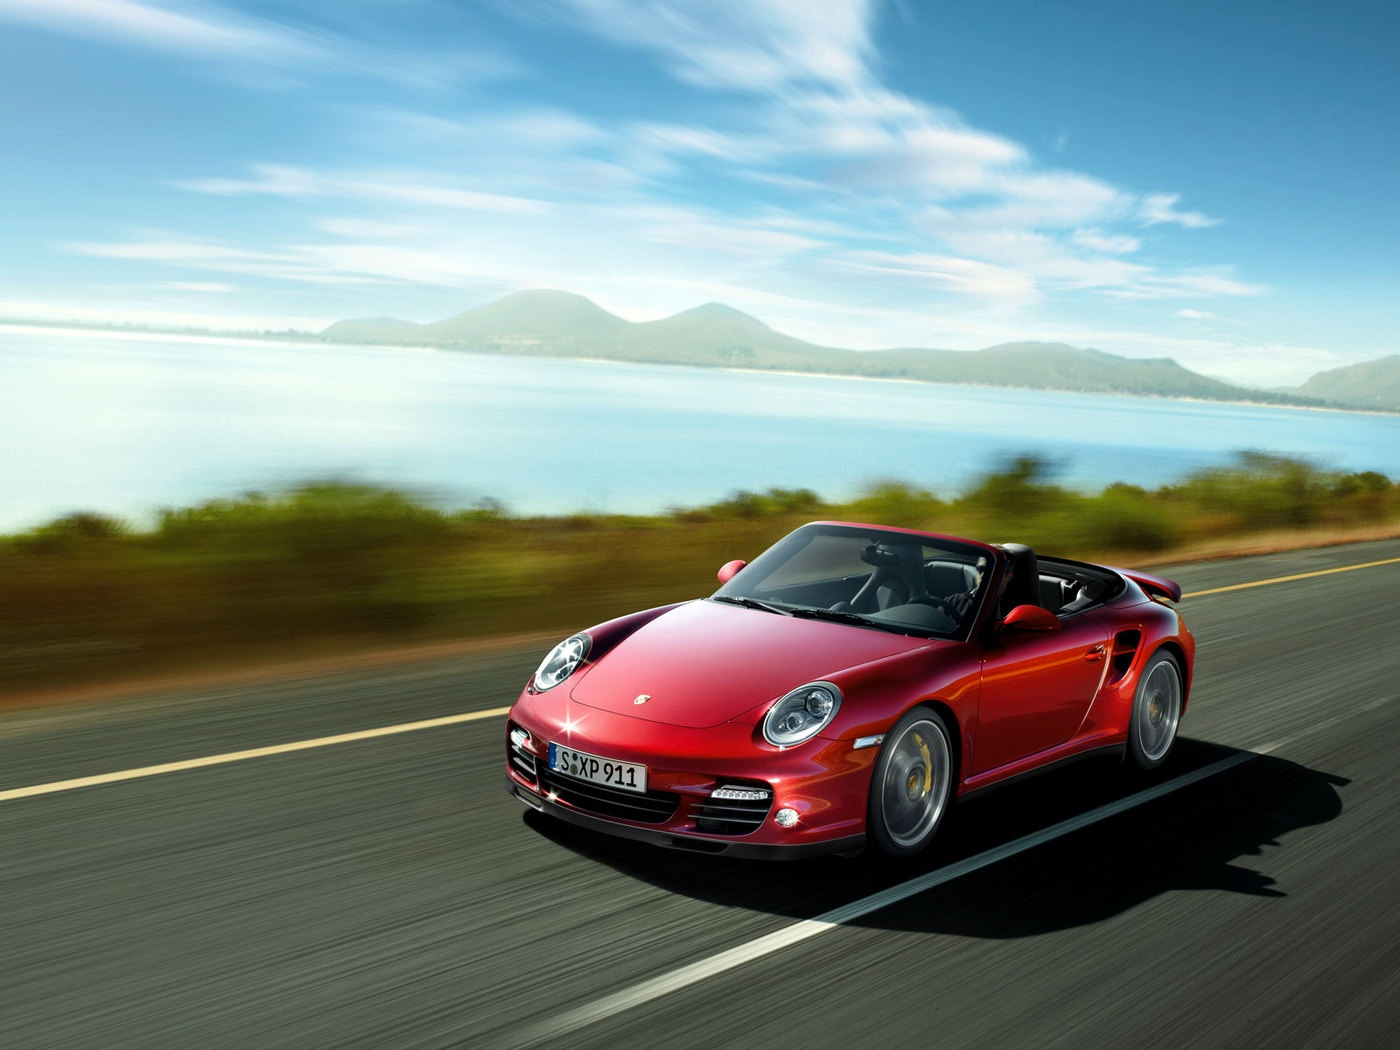 Porsche 911 Turbo Cabrio 169.38 Kb